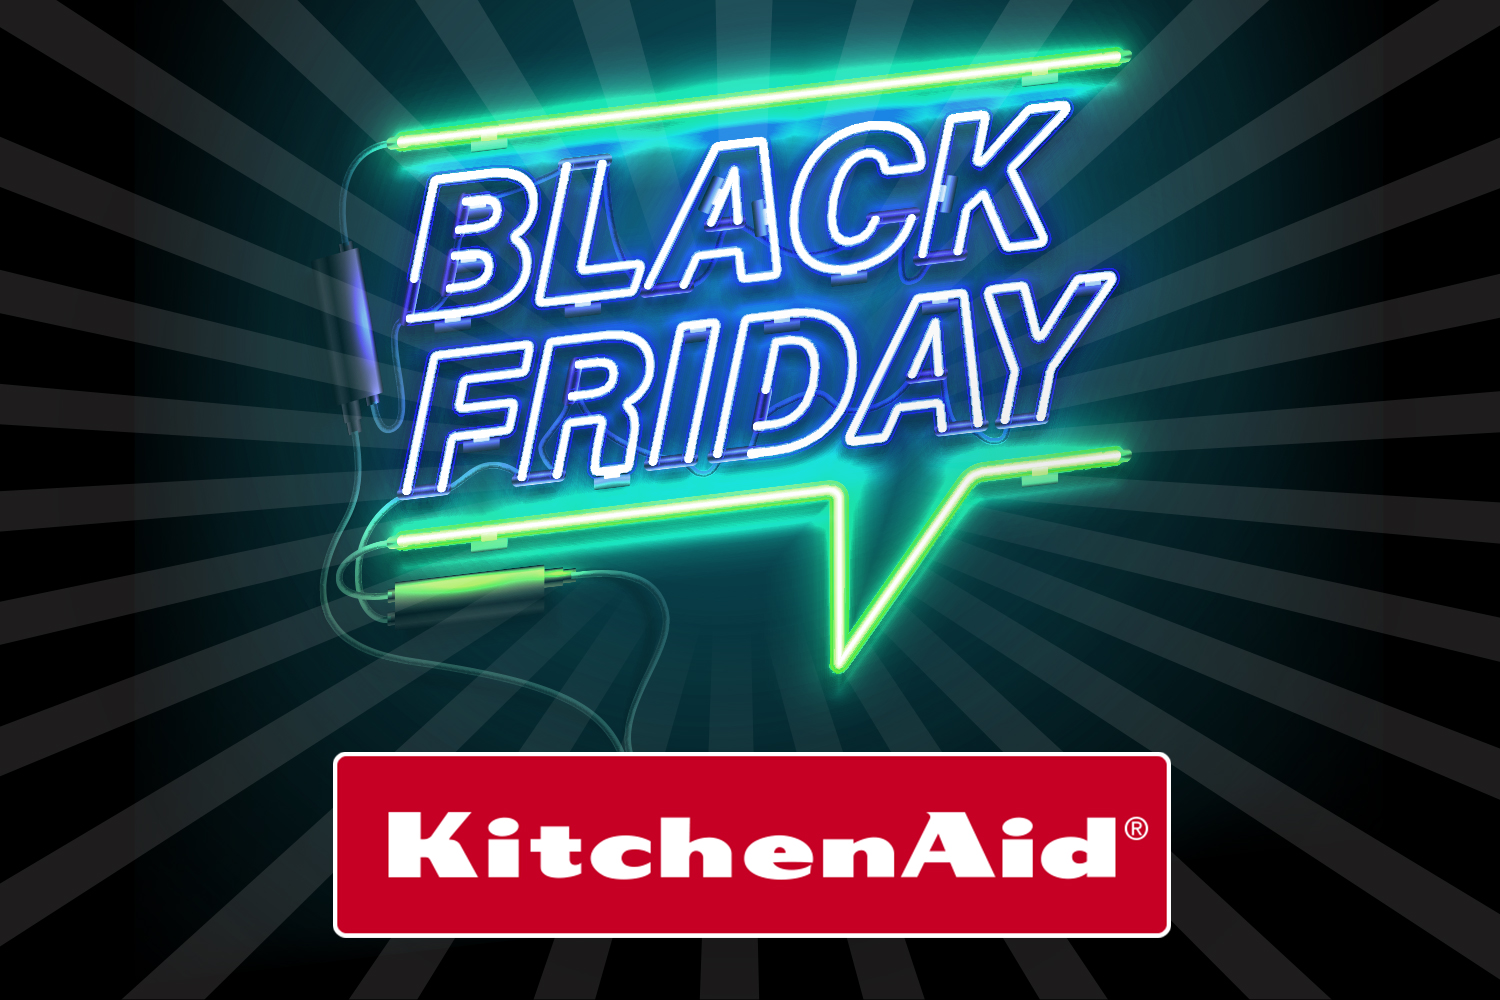 Black Friday could be the perfect time to pick up a KitchenAid deal